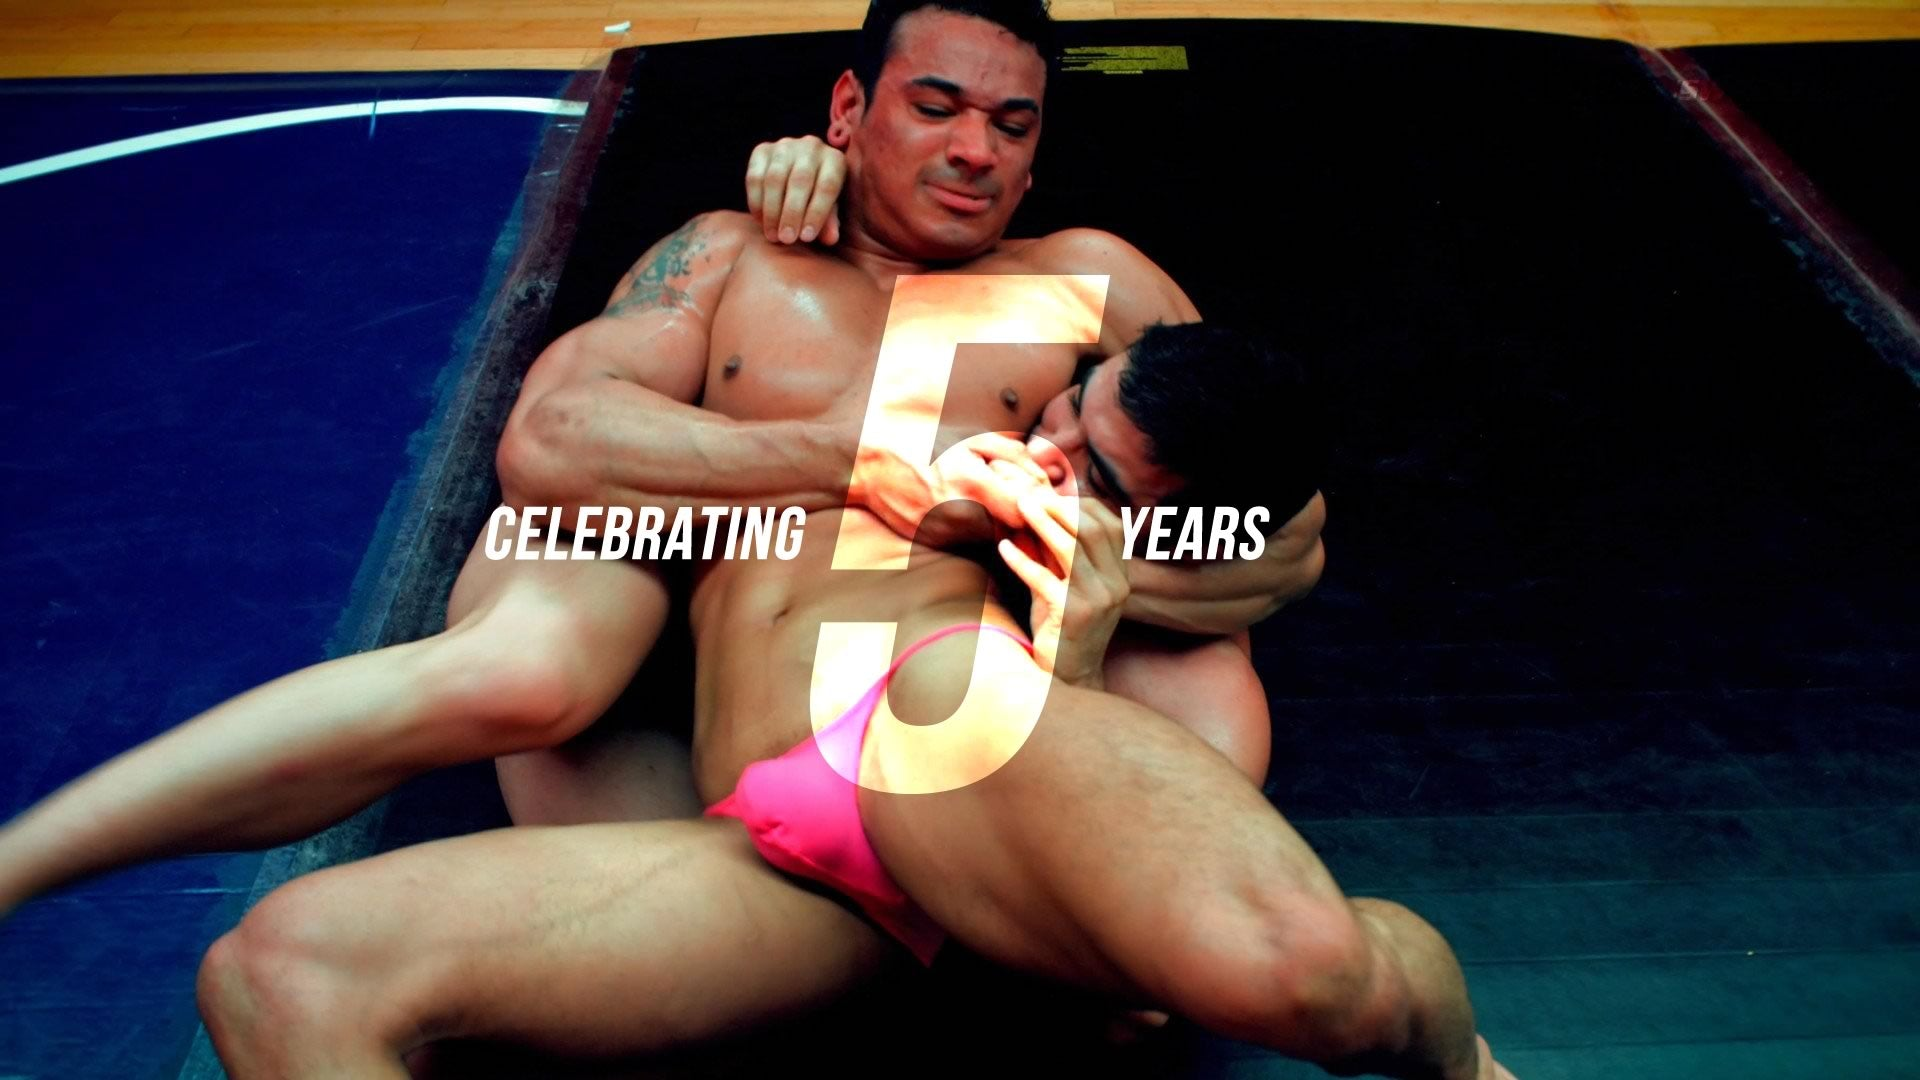 Celebrating 5 Years of Movimus Wrestling